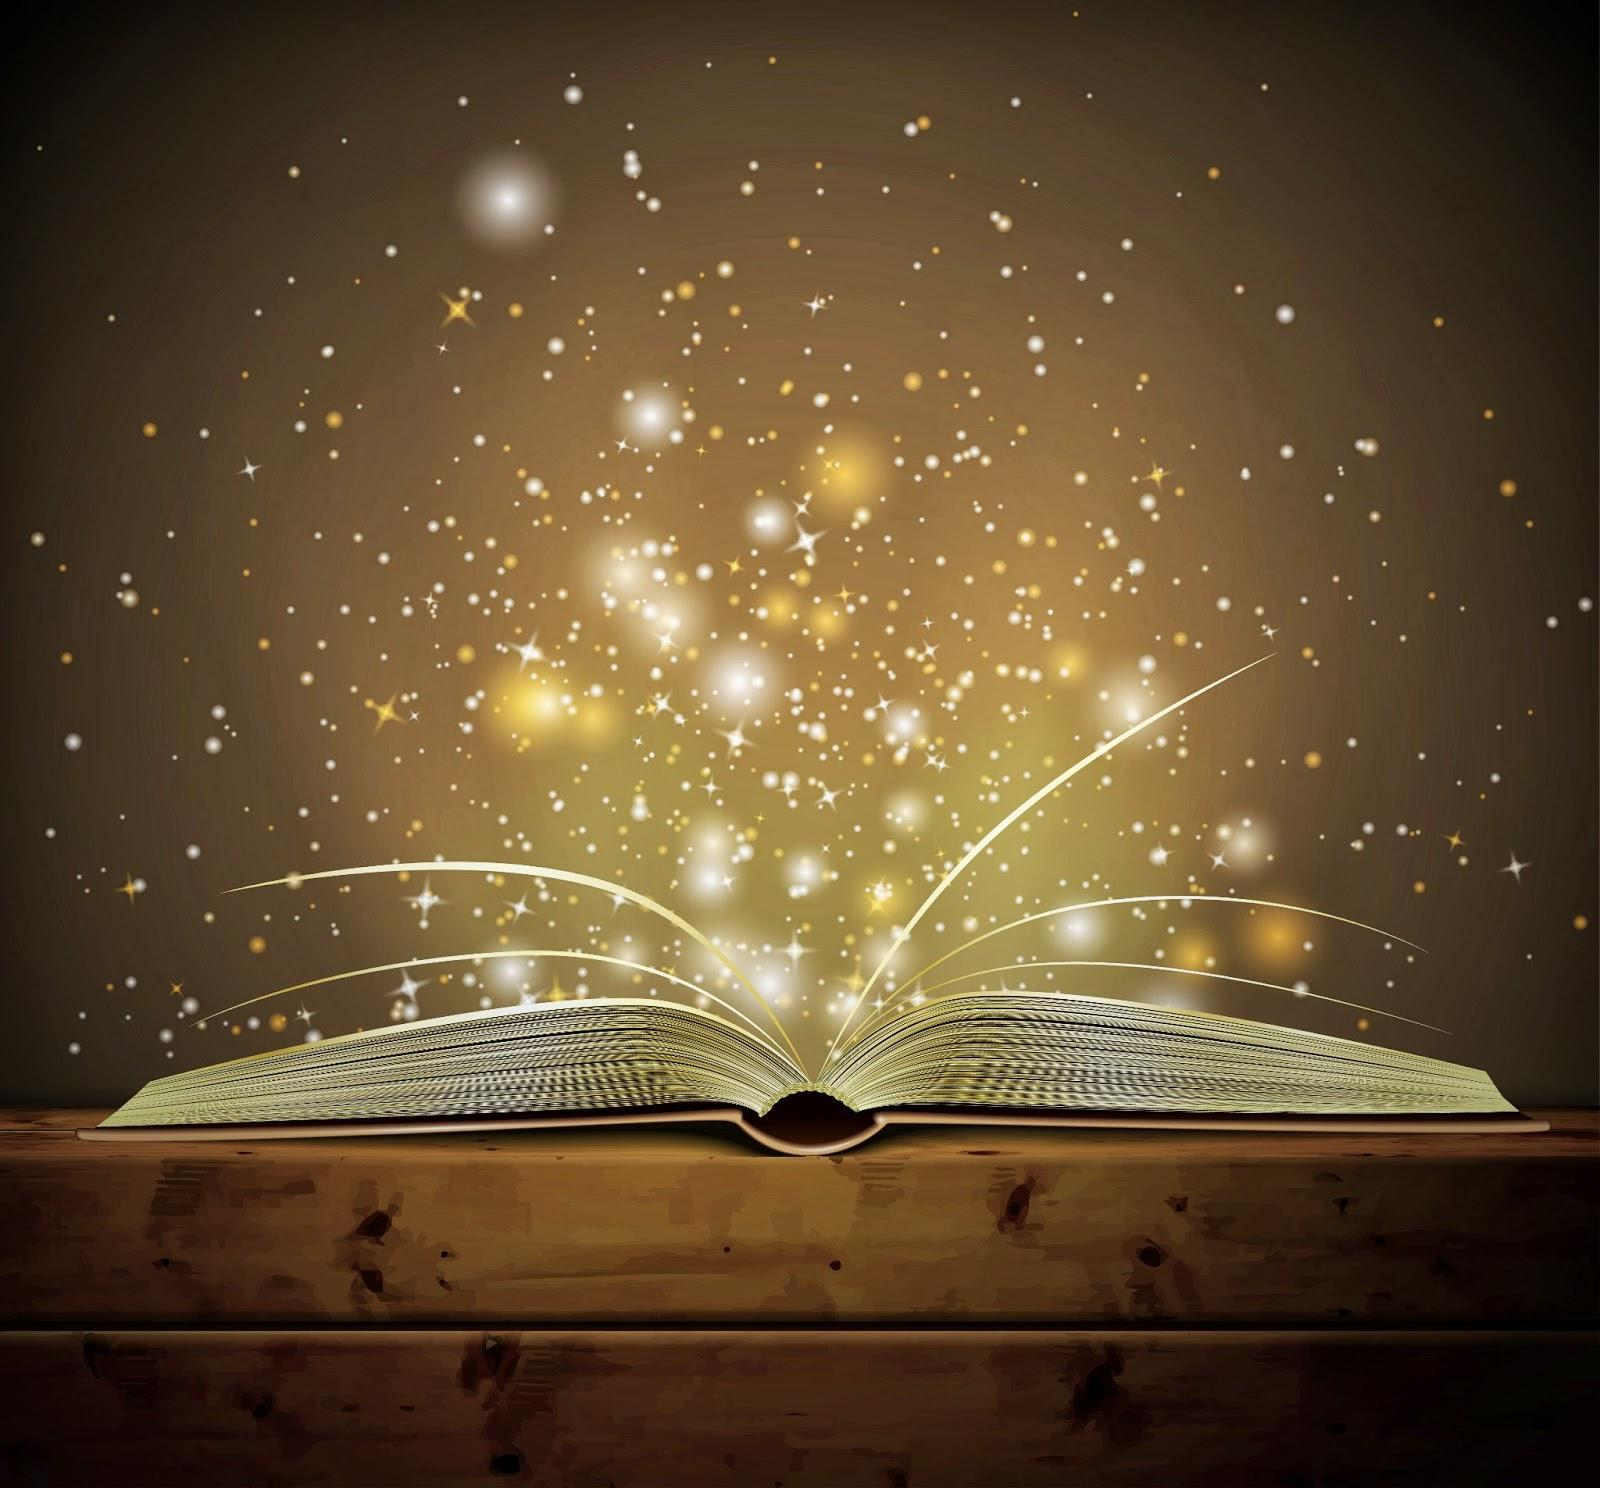 What is the best book you have ever read?